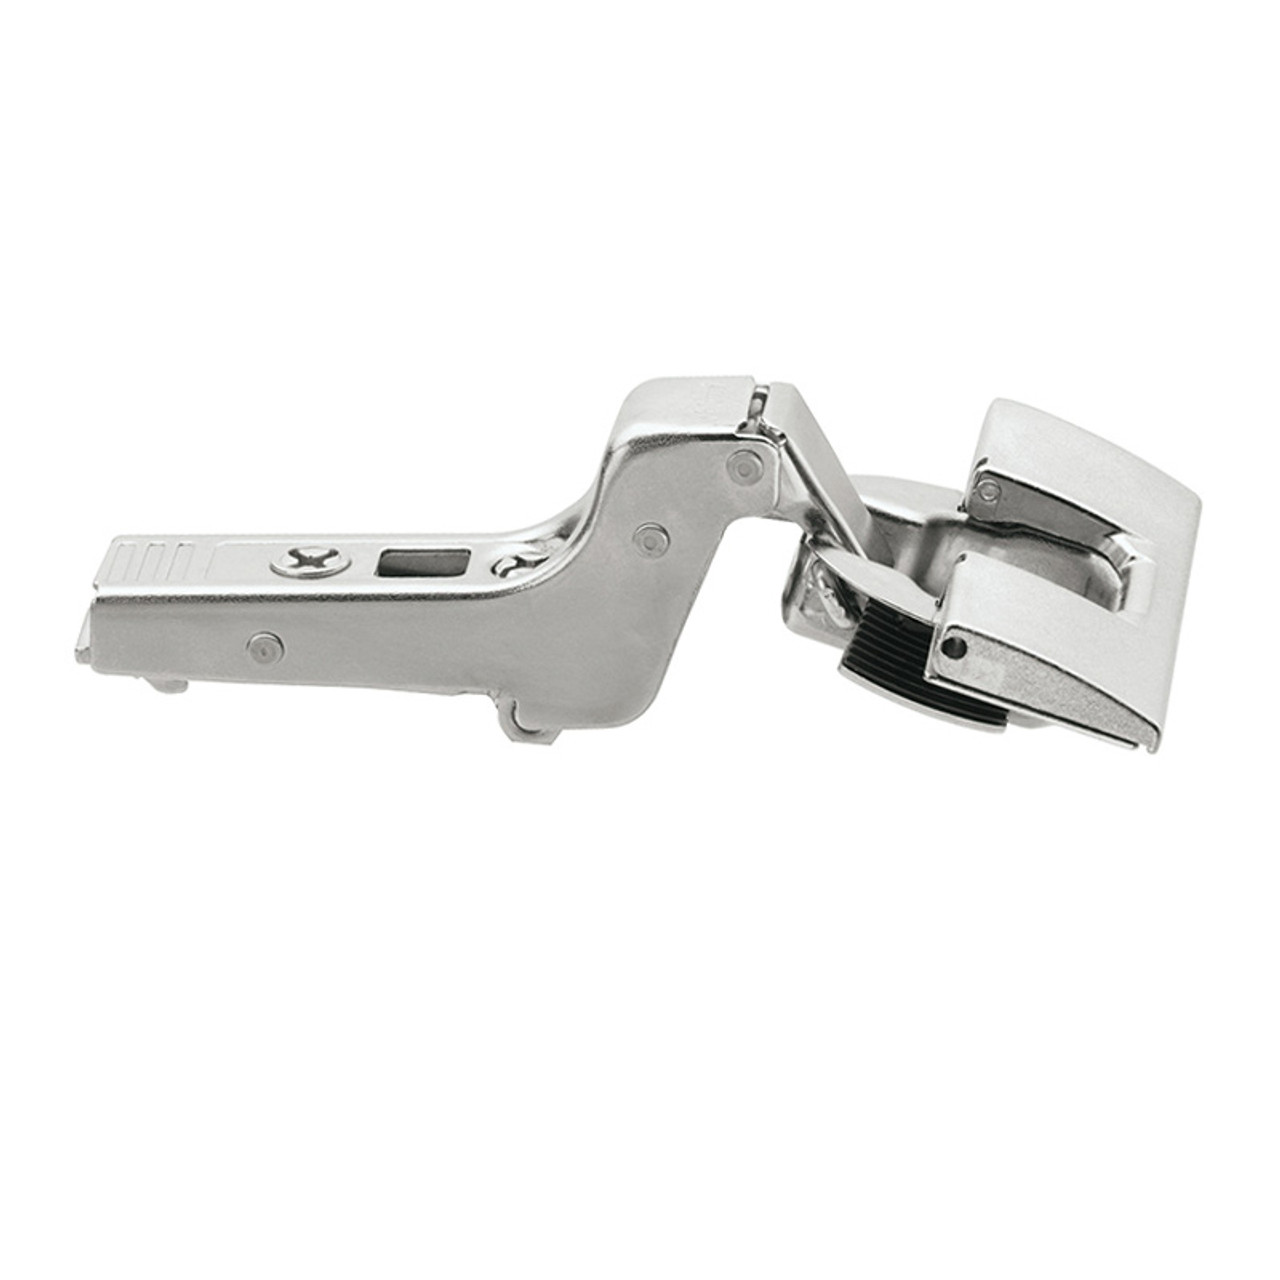 107° CLIP top INSERTA Unsprung Hinge - Inset